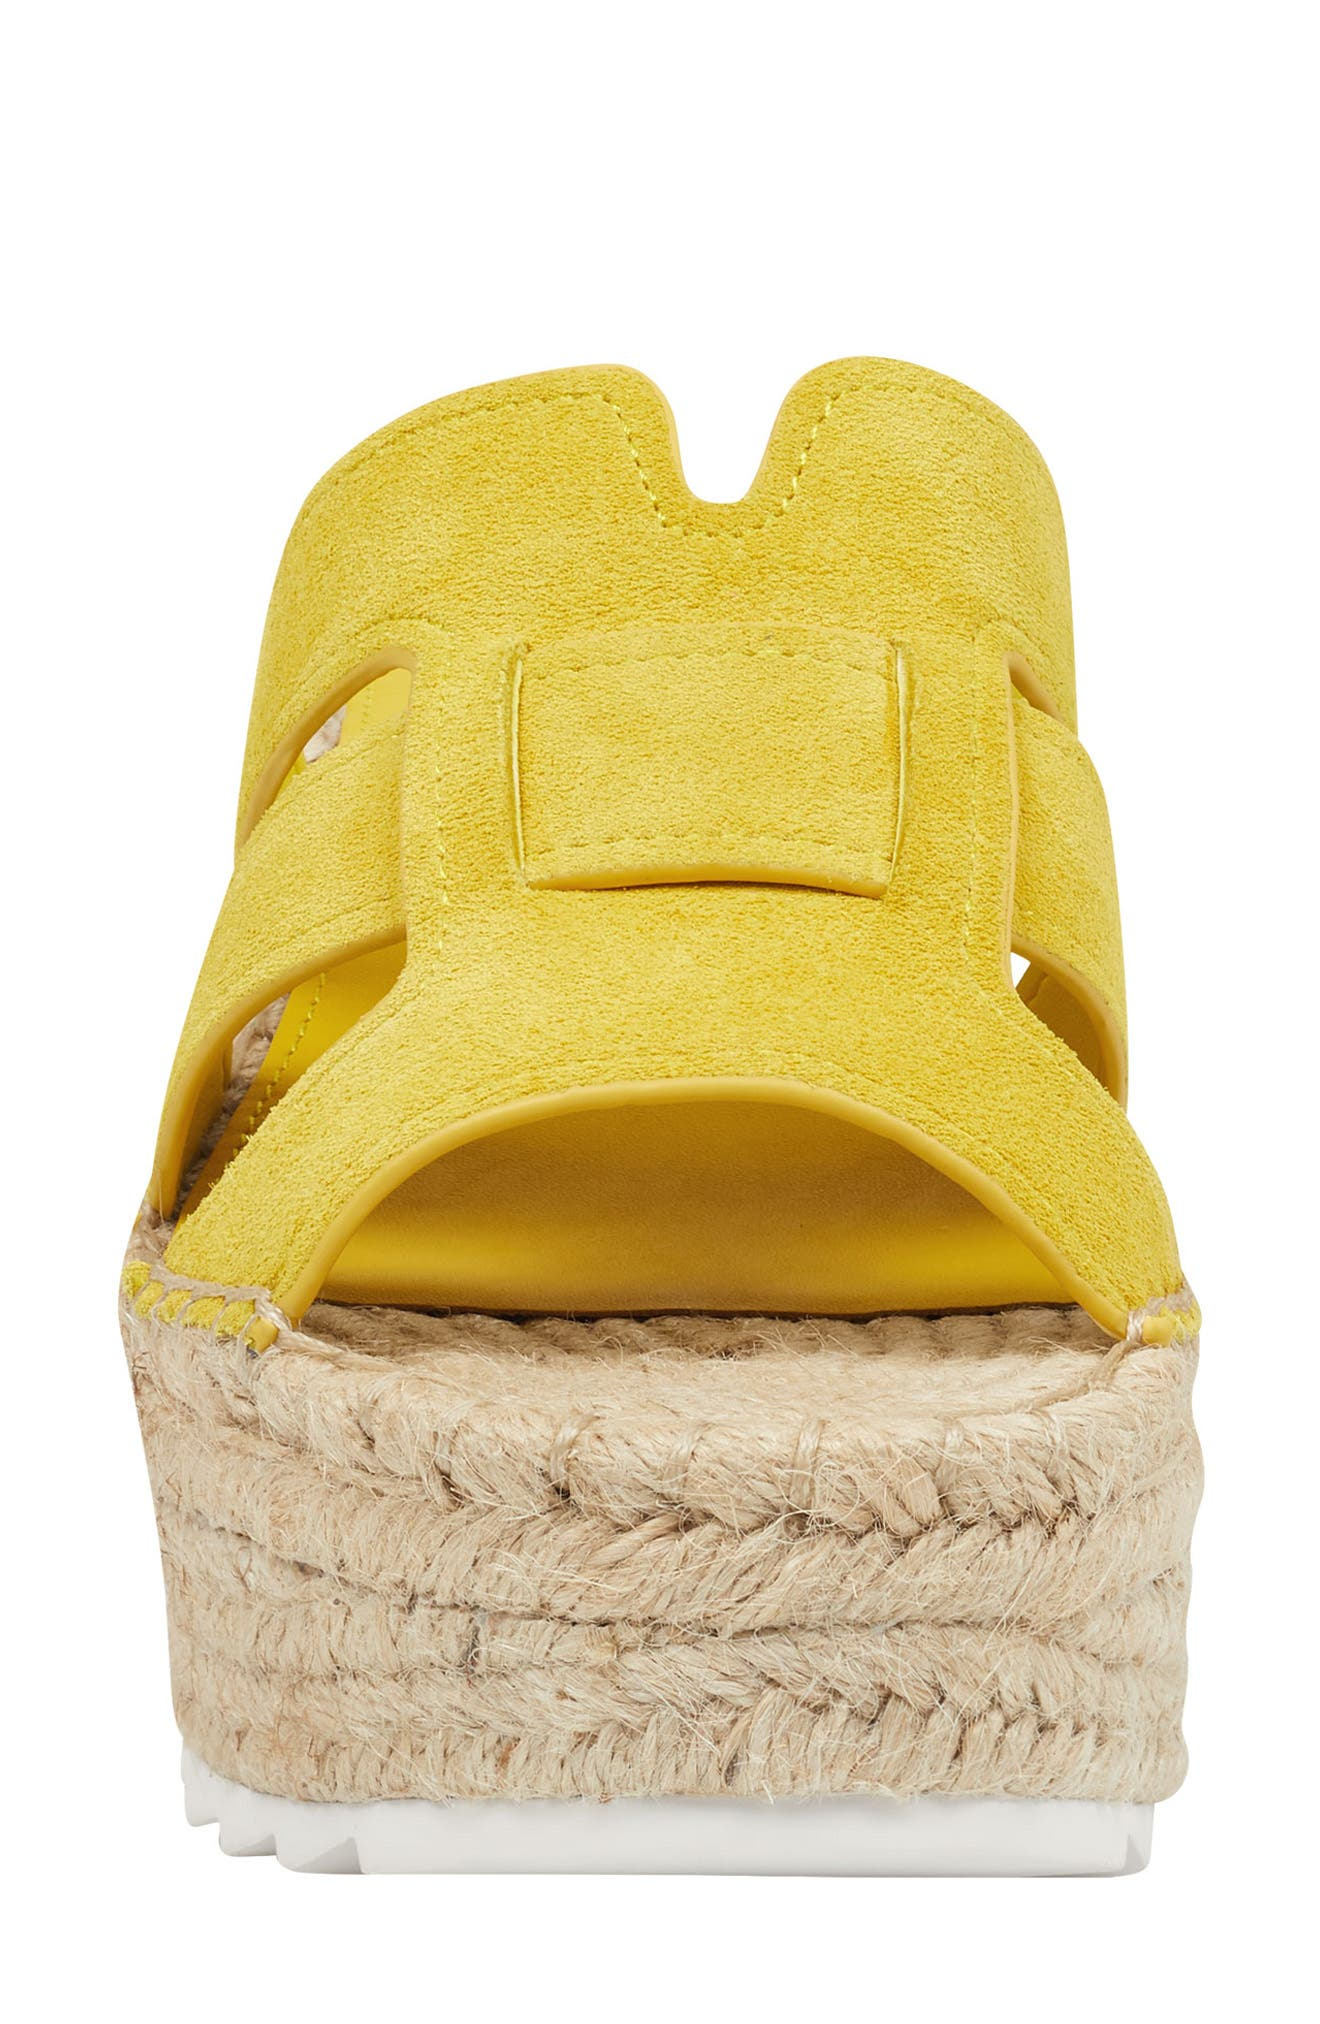 MARC FISHER LTD, Robbyn Espadrille Wedge Sandal, Alternate thumbnail 4, color, YELLOW SUEDE